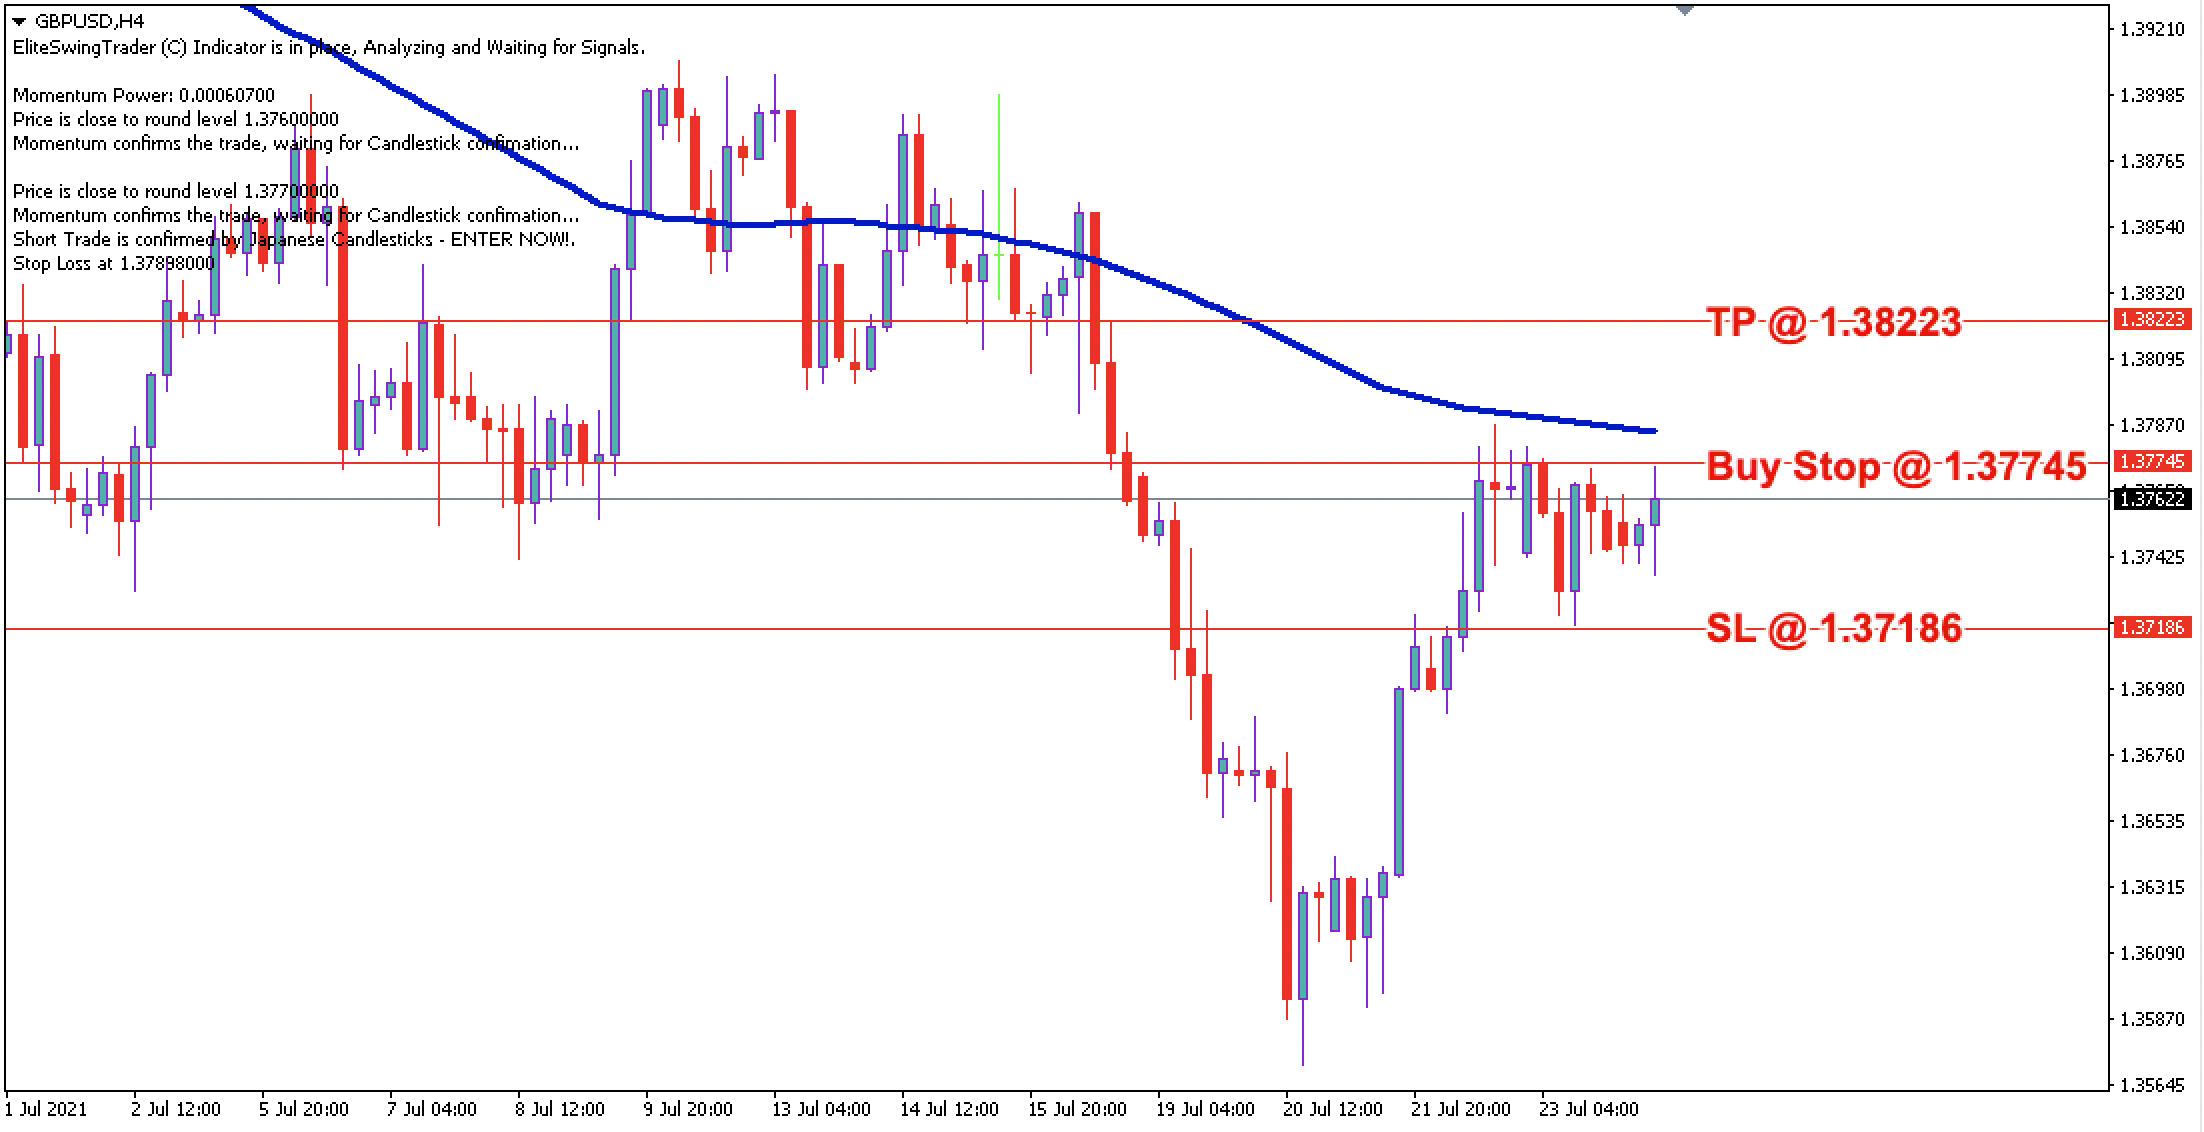 GBP/USD Daily Price Forecast – 26th July 2021